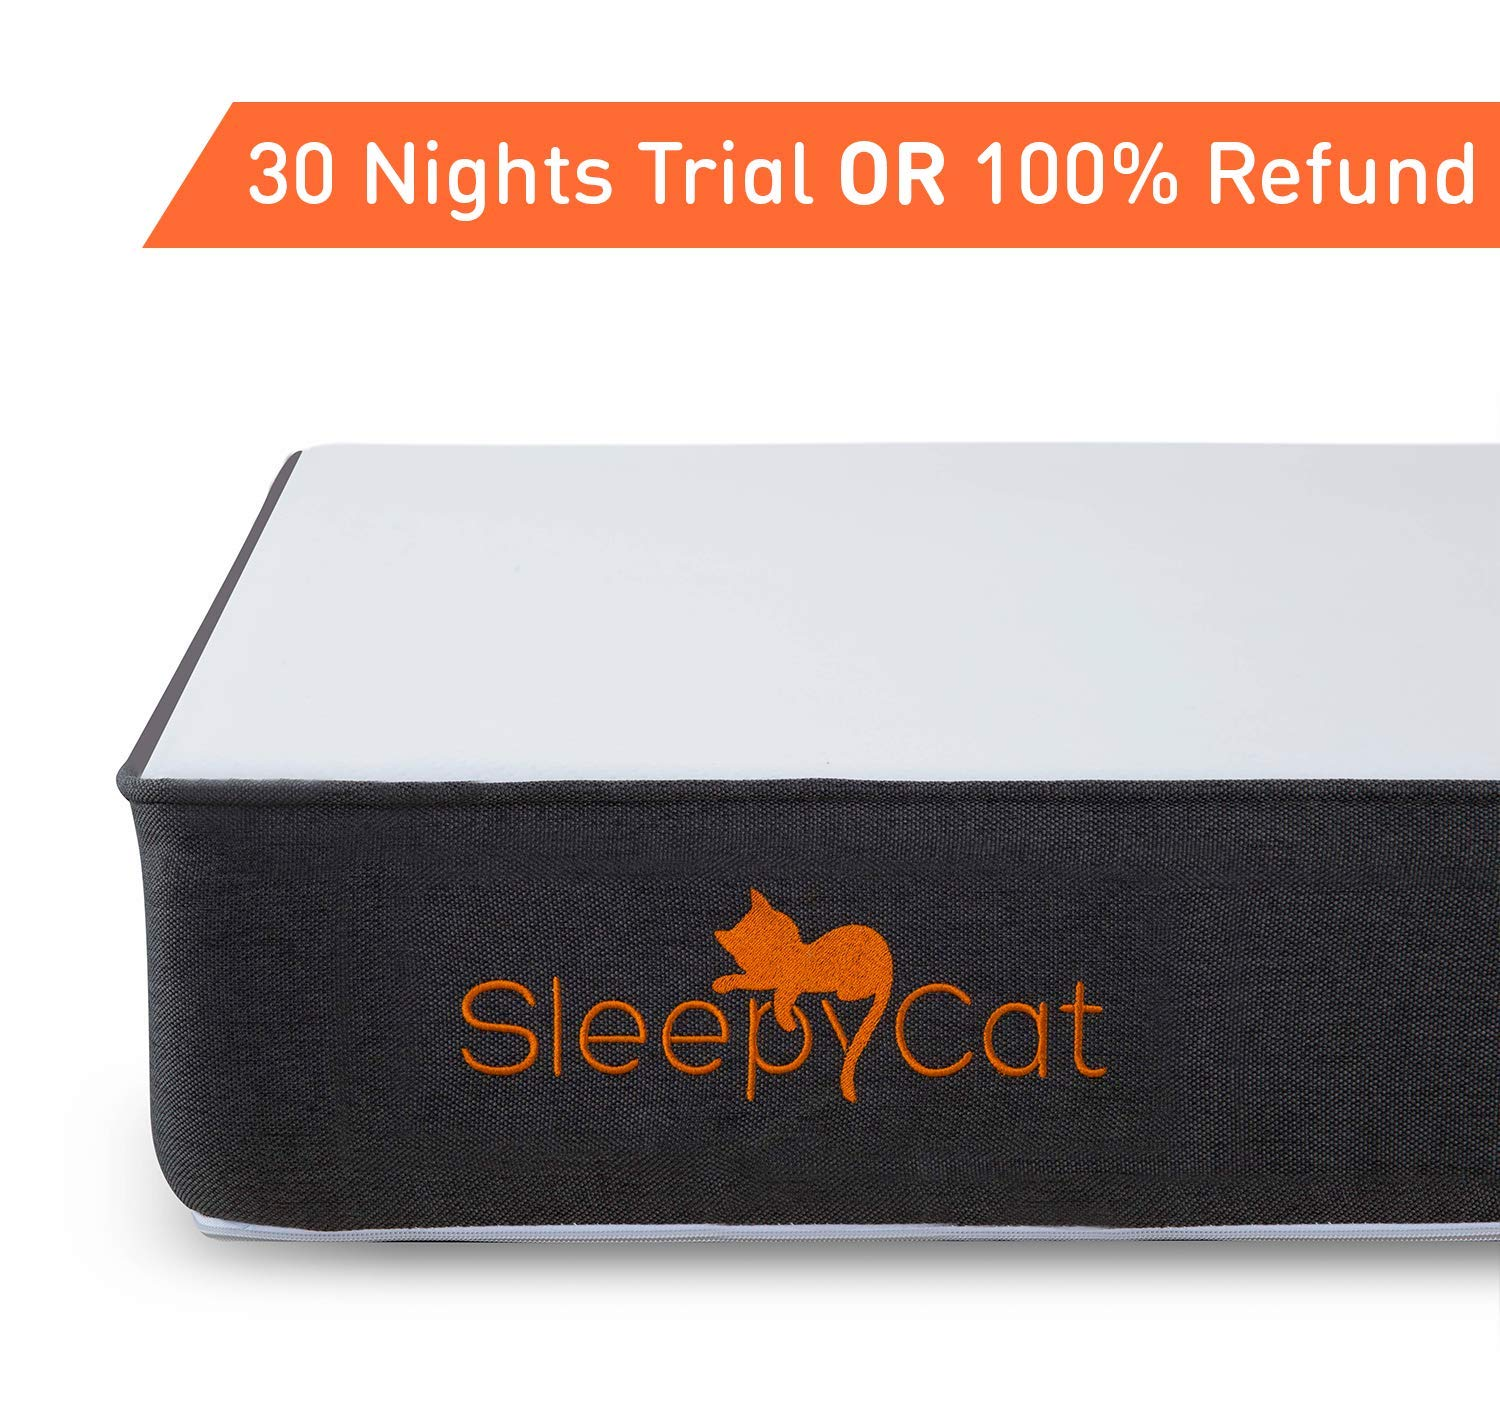 SleepyCat Orthopedic Gel Memory Foam Mattress (75x36x6 inches)